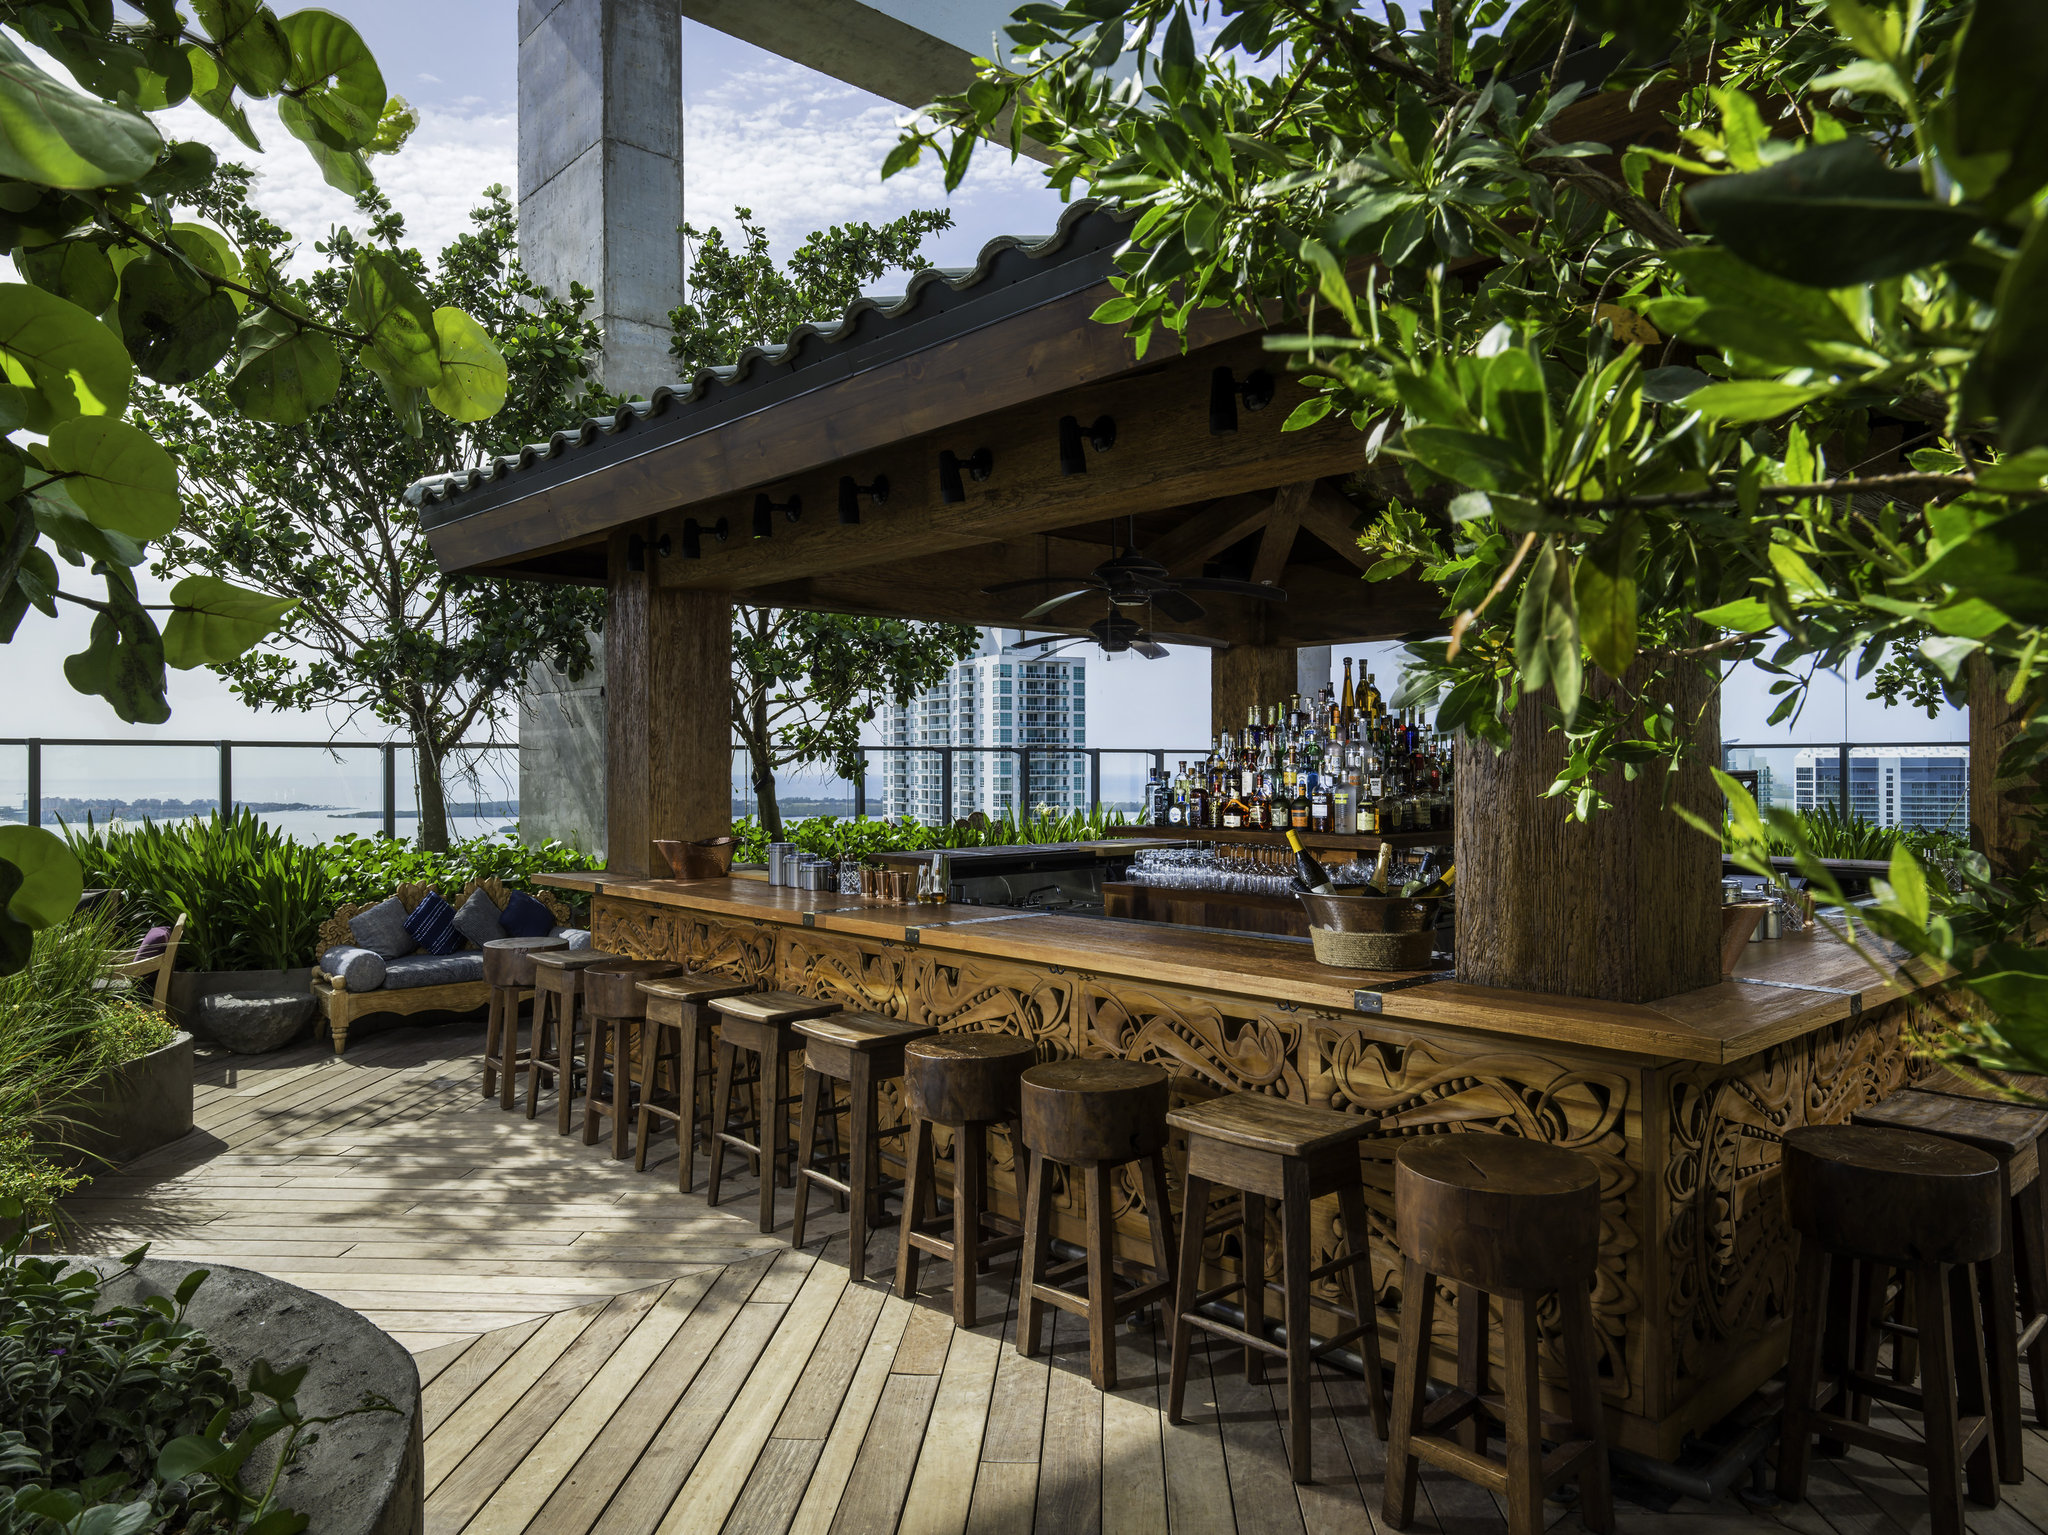 hotels in miami with kitchen indoor grill 10 east coast rooftop bars perfect for summer